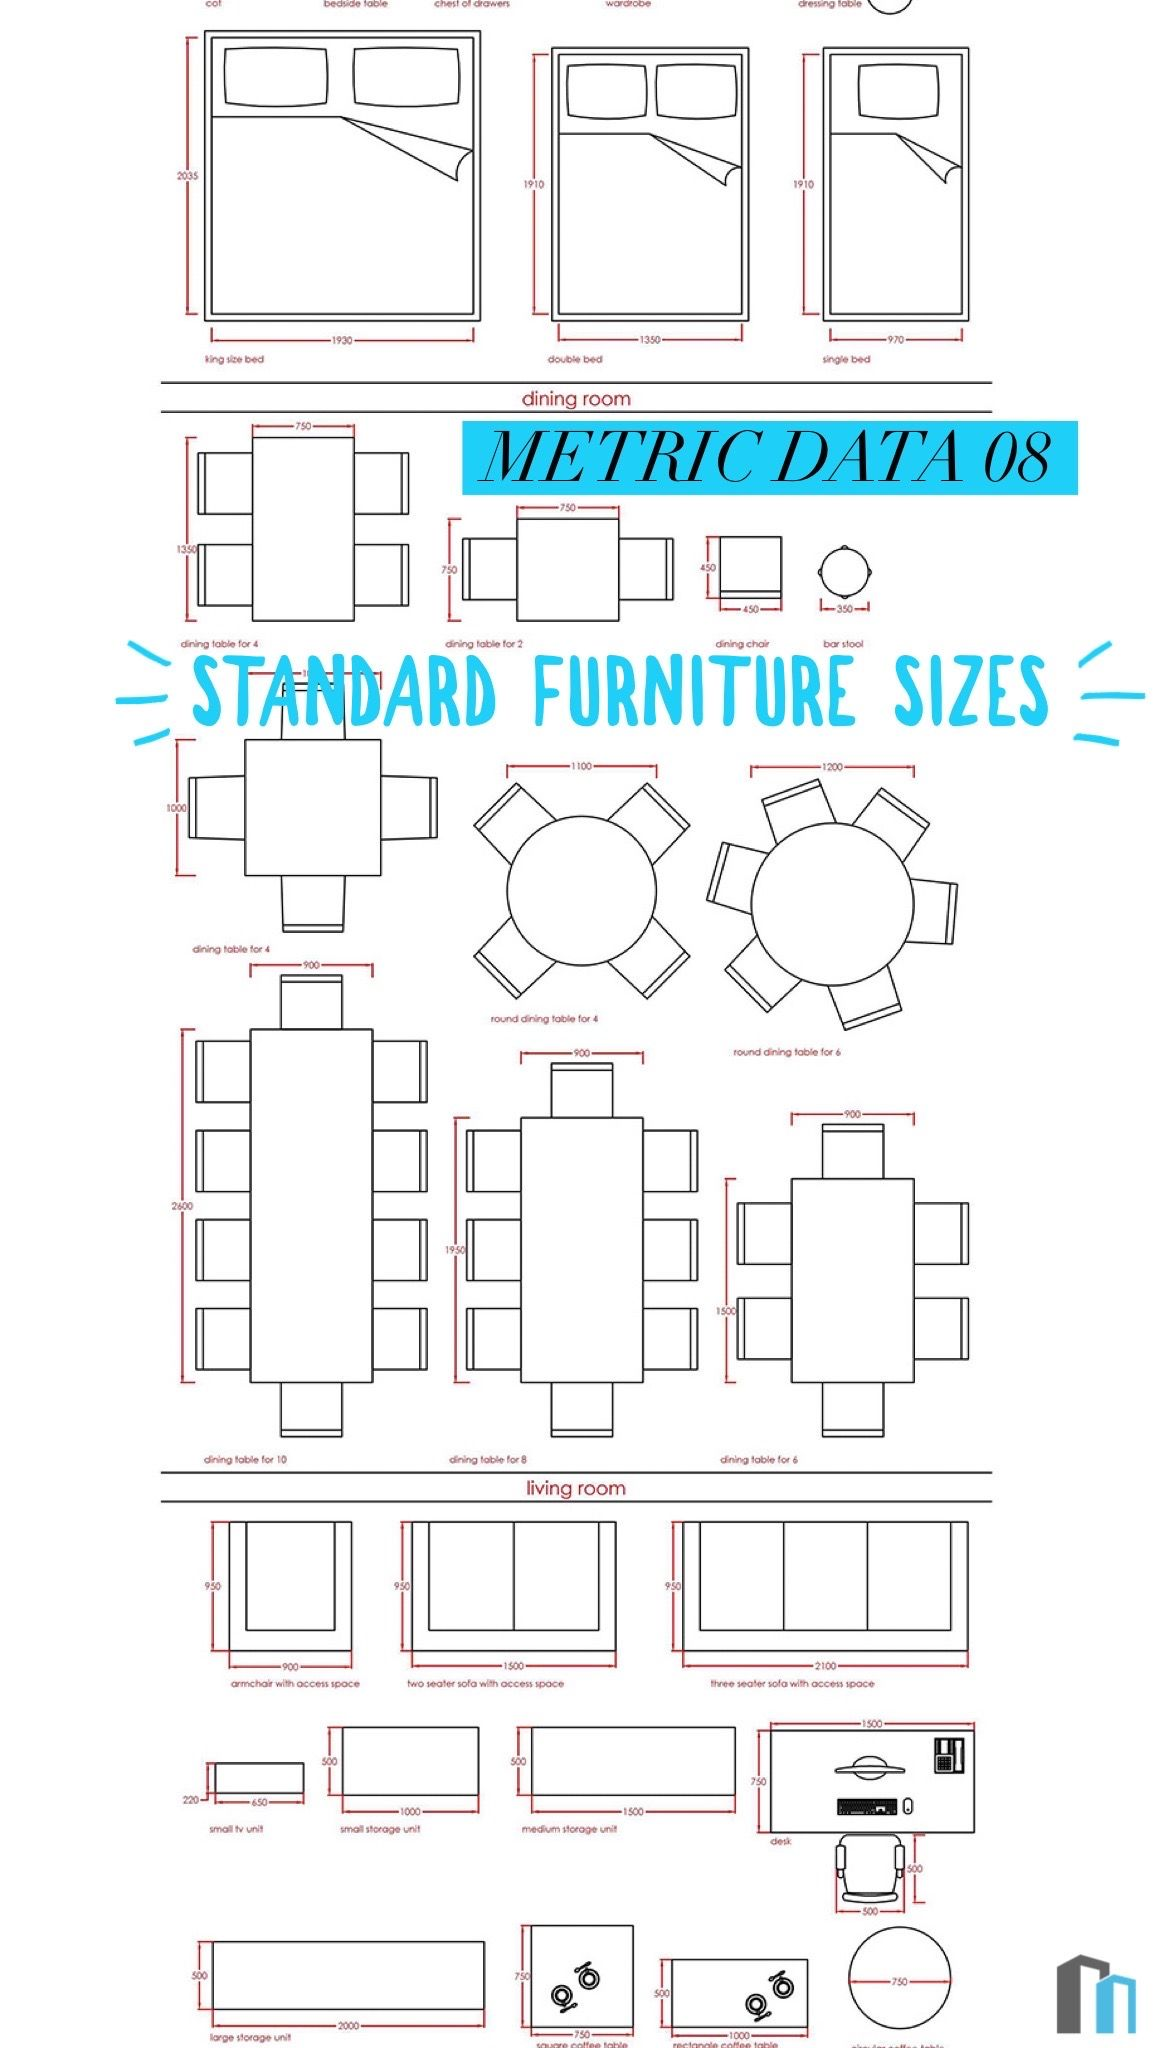 Metric Data 08 Standard Furniture Sizes Interior